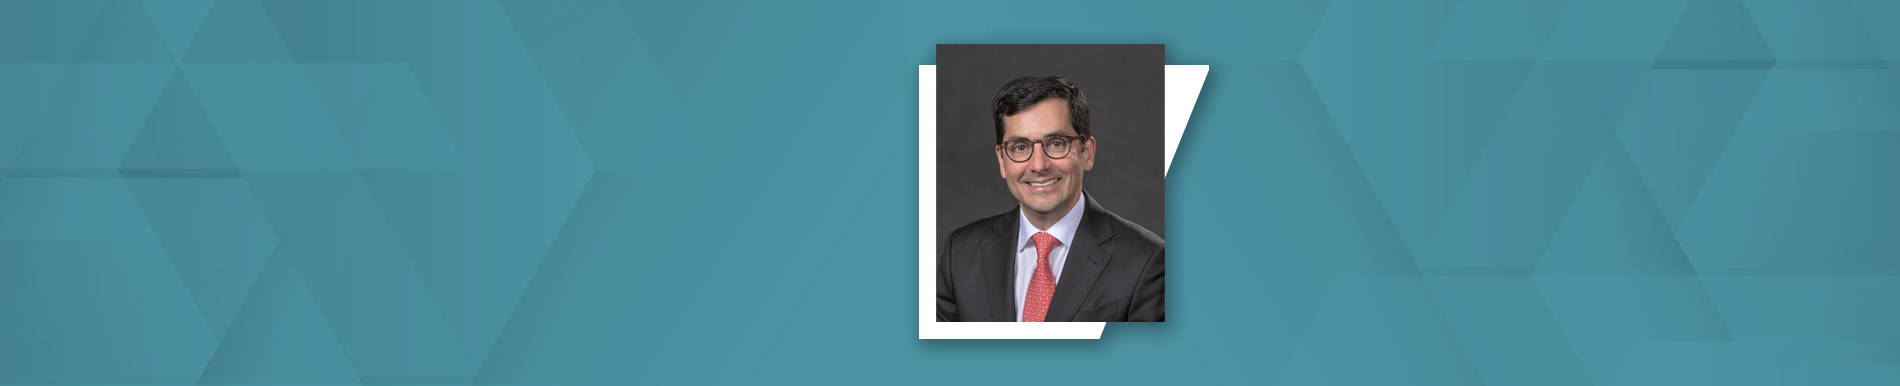 "Ezequiel ""Zeke"" Silva III, MD, FACR , appointed to Chair of the AMA Multispecialty Relative Value Scale Update Committee"